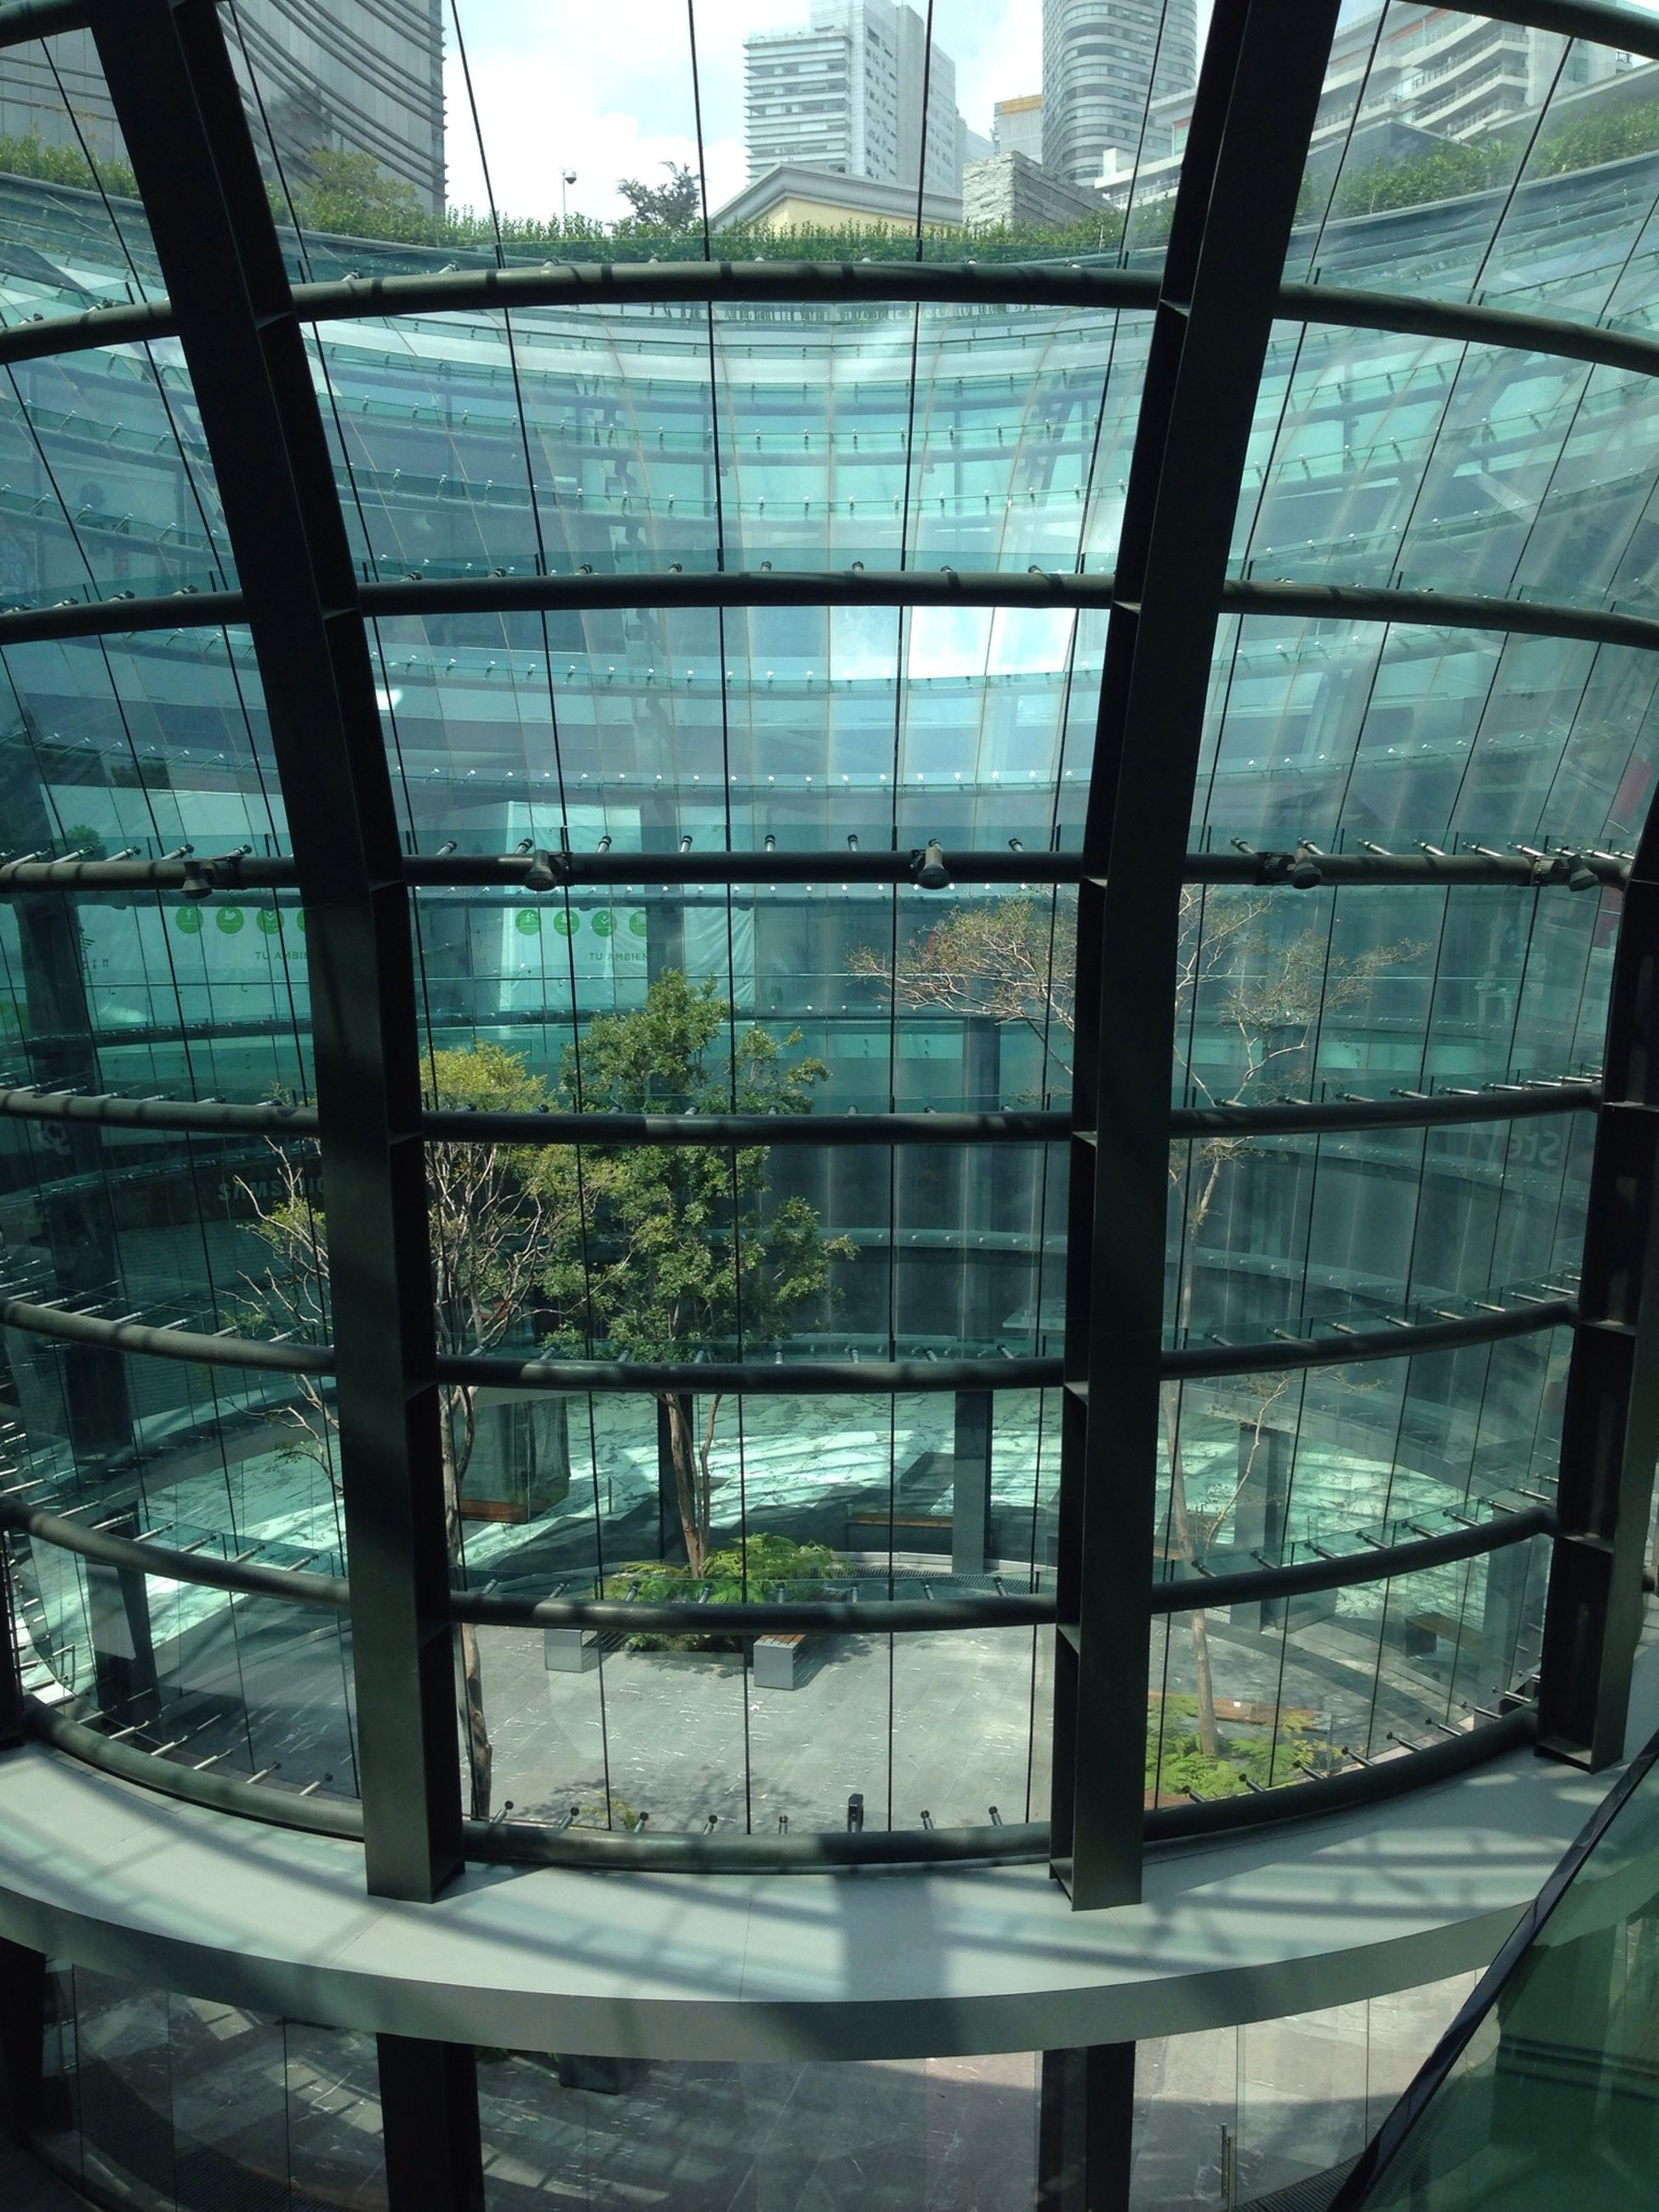 architecture, built structure, indoors, glass - material, window, building exterior, transparent, modern, ceiling, reflection, building, glass, city, pattern, day, no people, sunlight, interior, architectural feature, office building